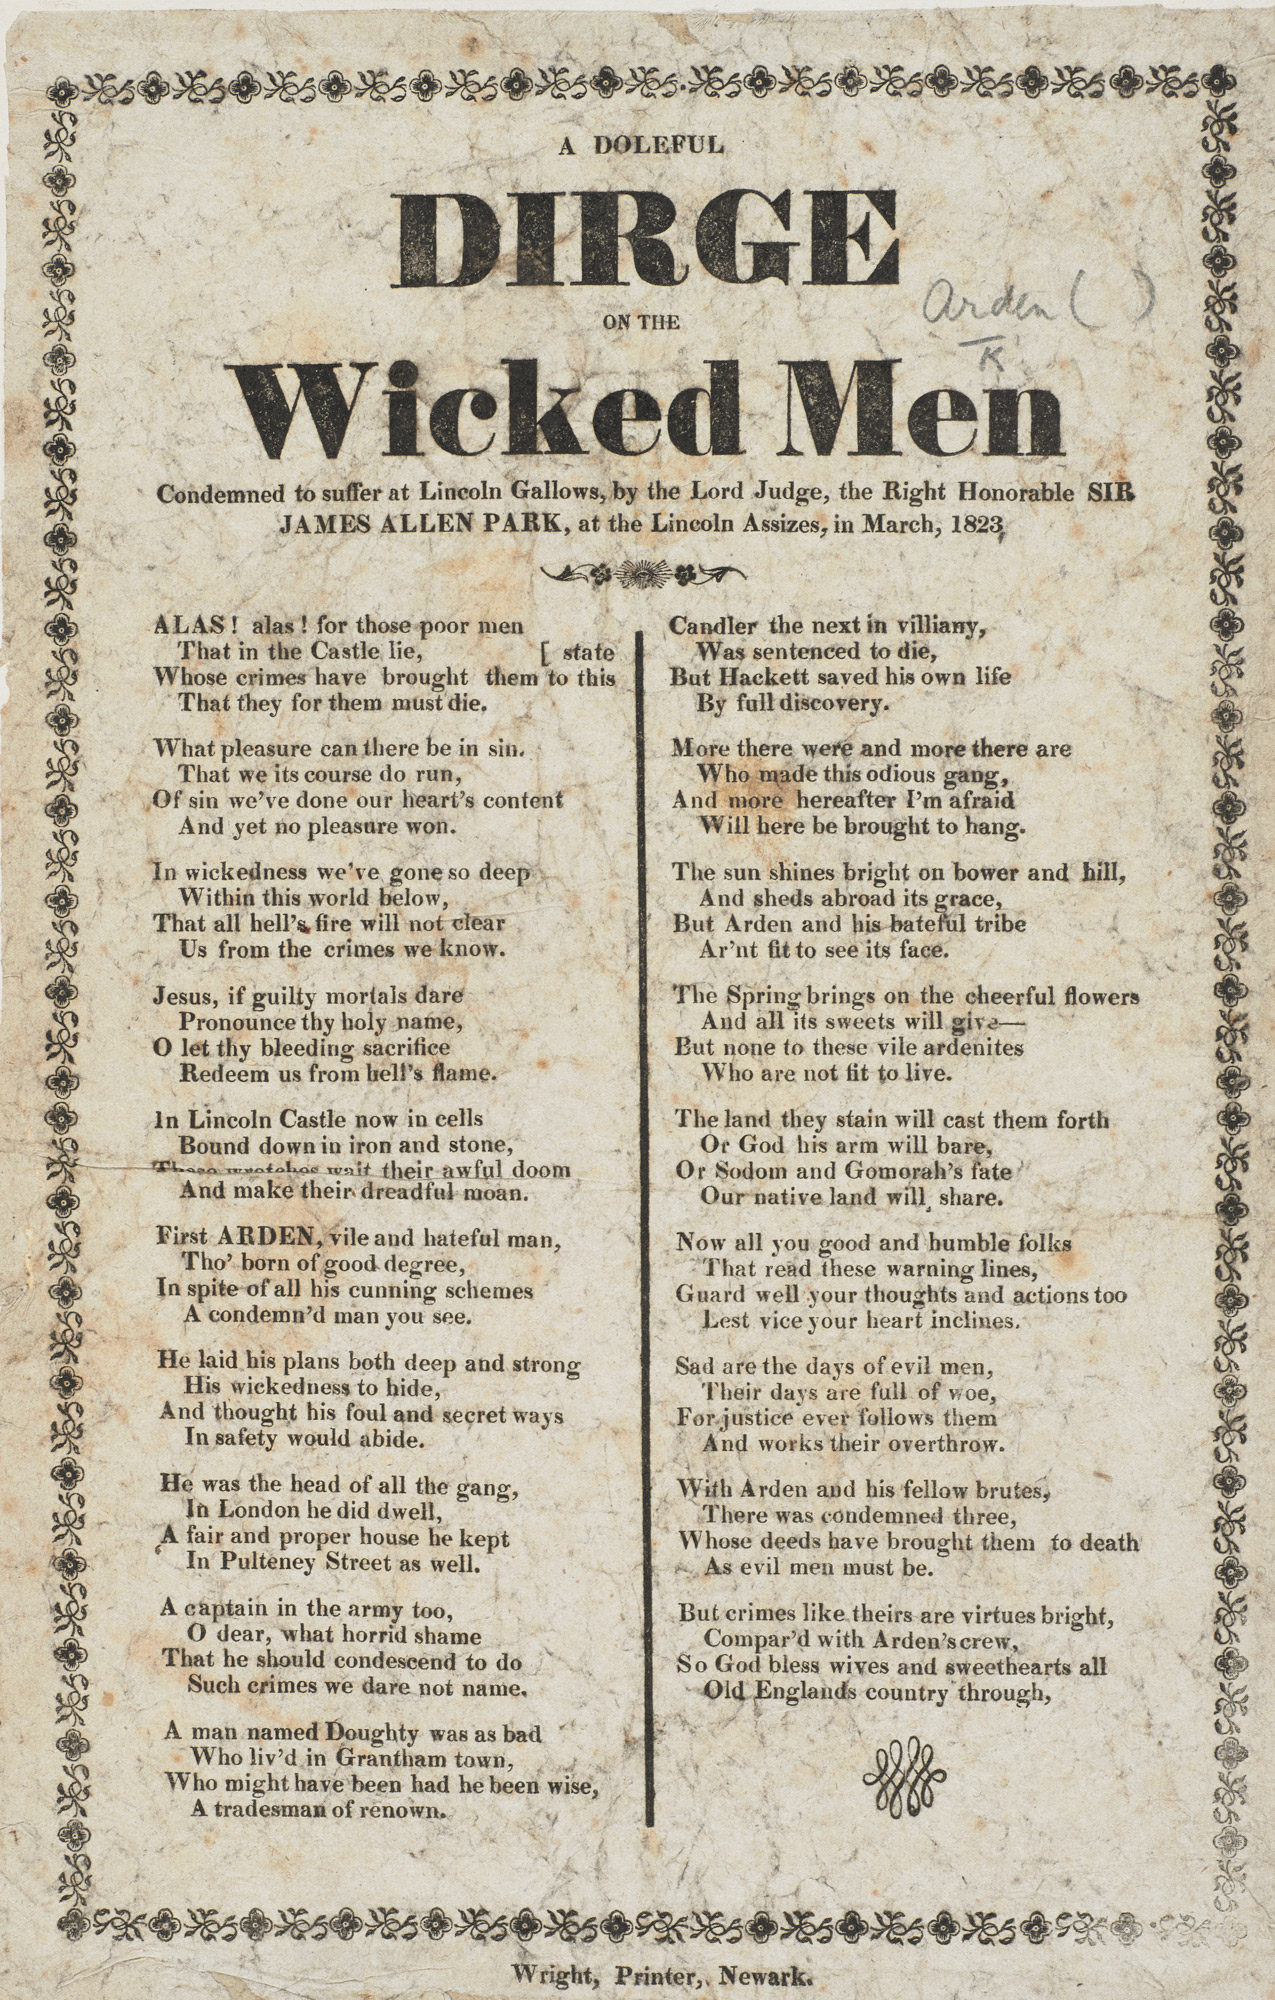 A Doleful Dirge on the Wicked Men